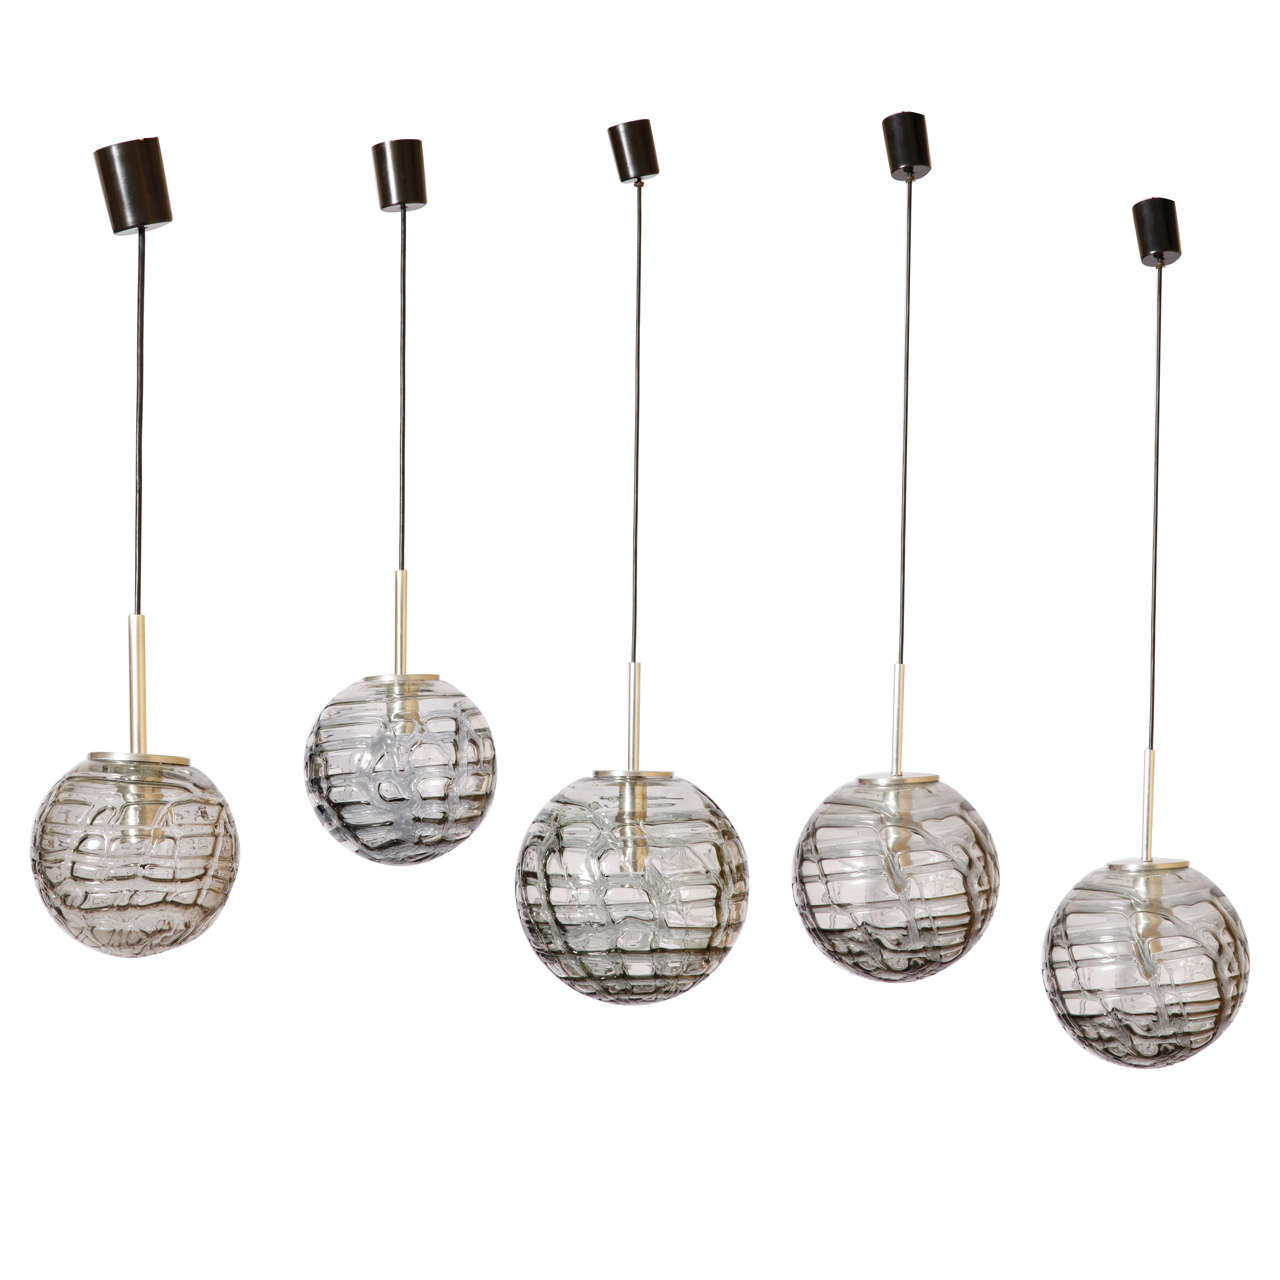 Doria Bubbled Glass Textured Pendant,Germany,1960's